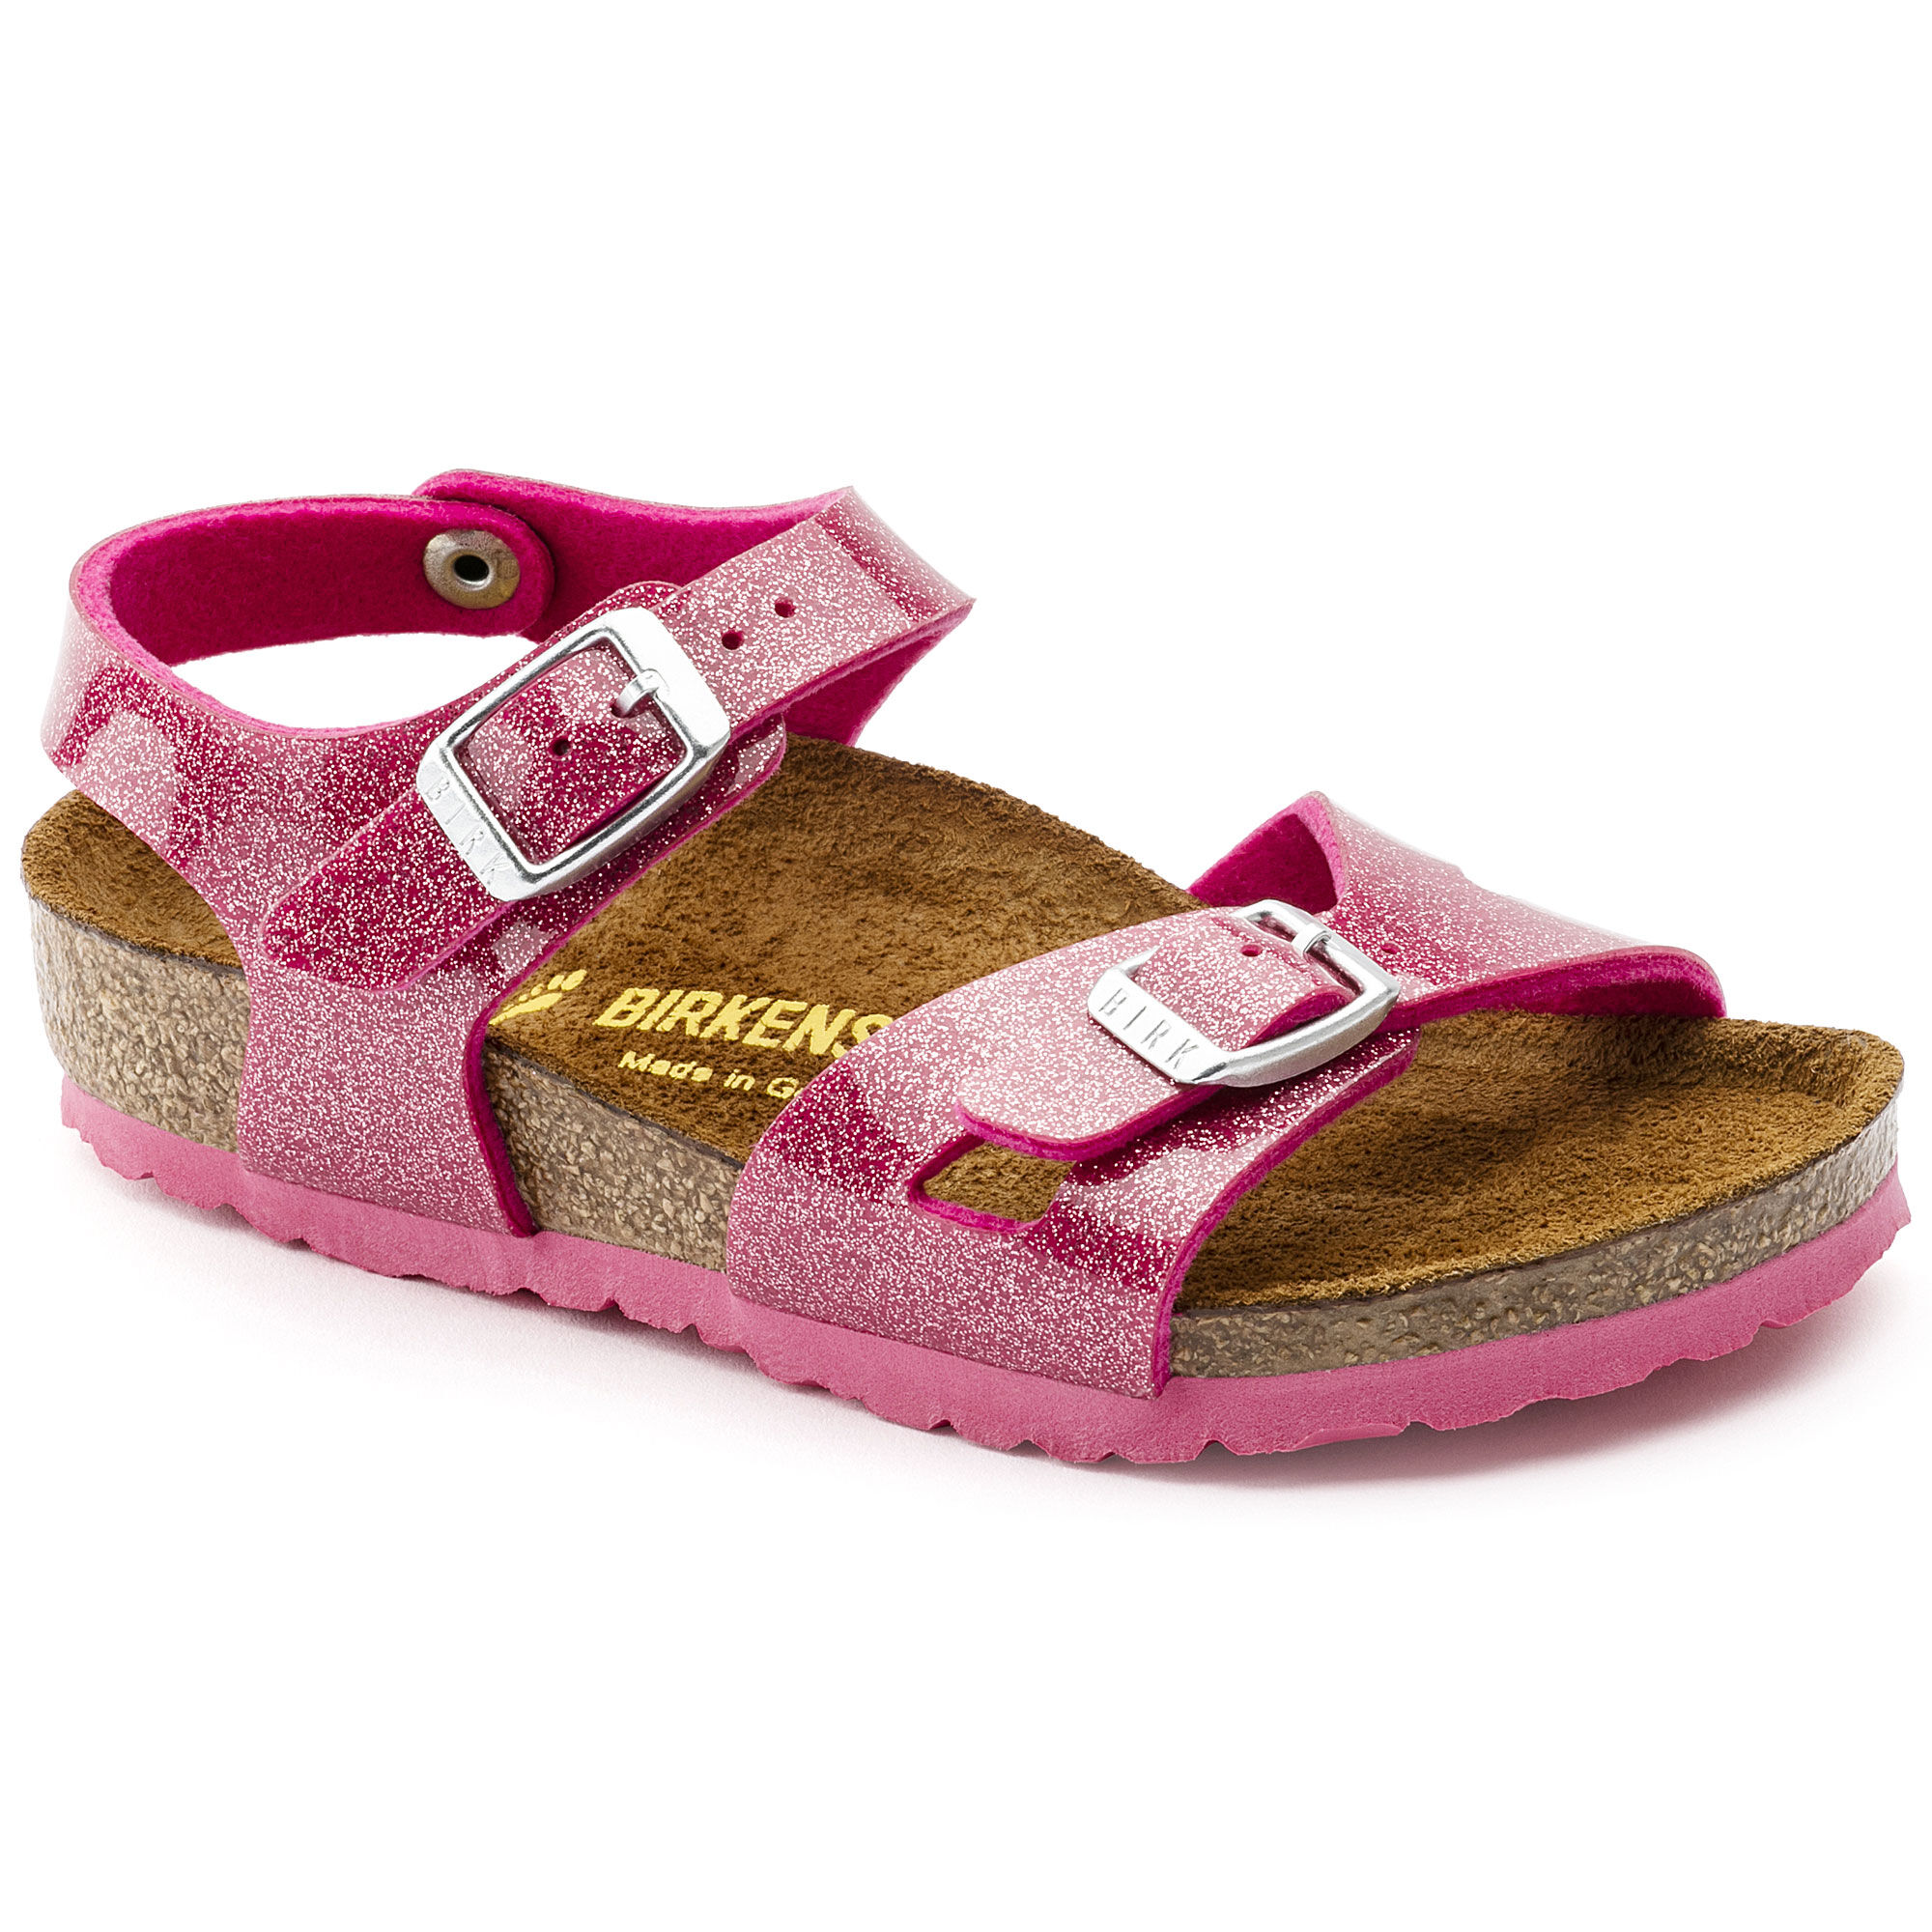 Kids Shoes and Sandals | online kaufen bei BIRKENSTOCK